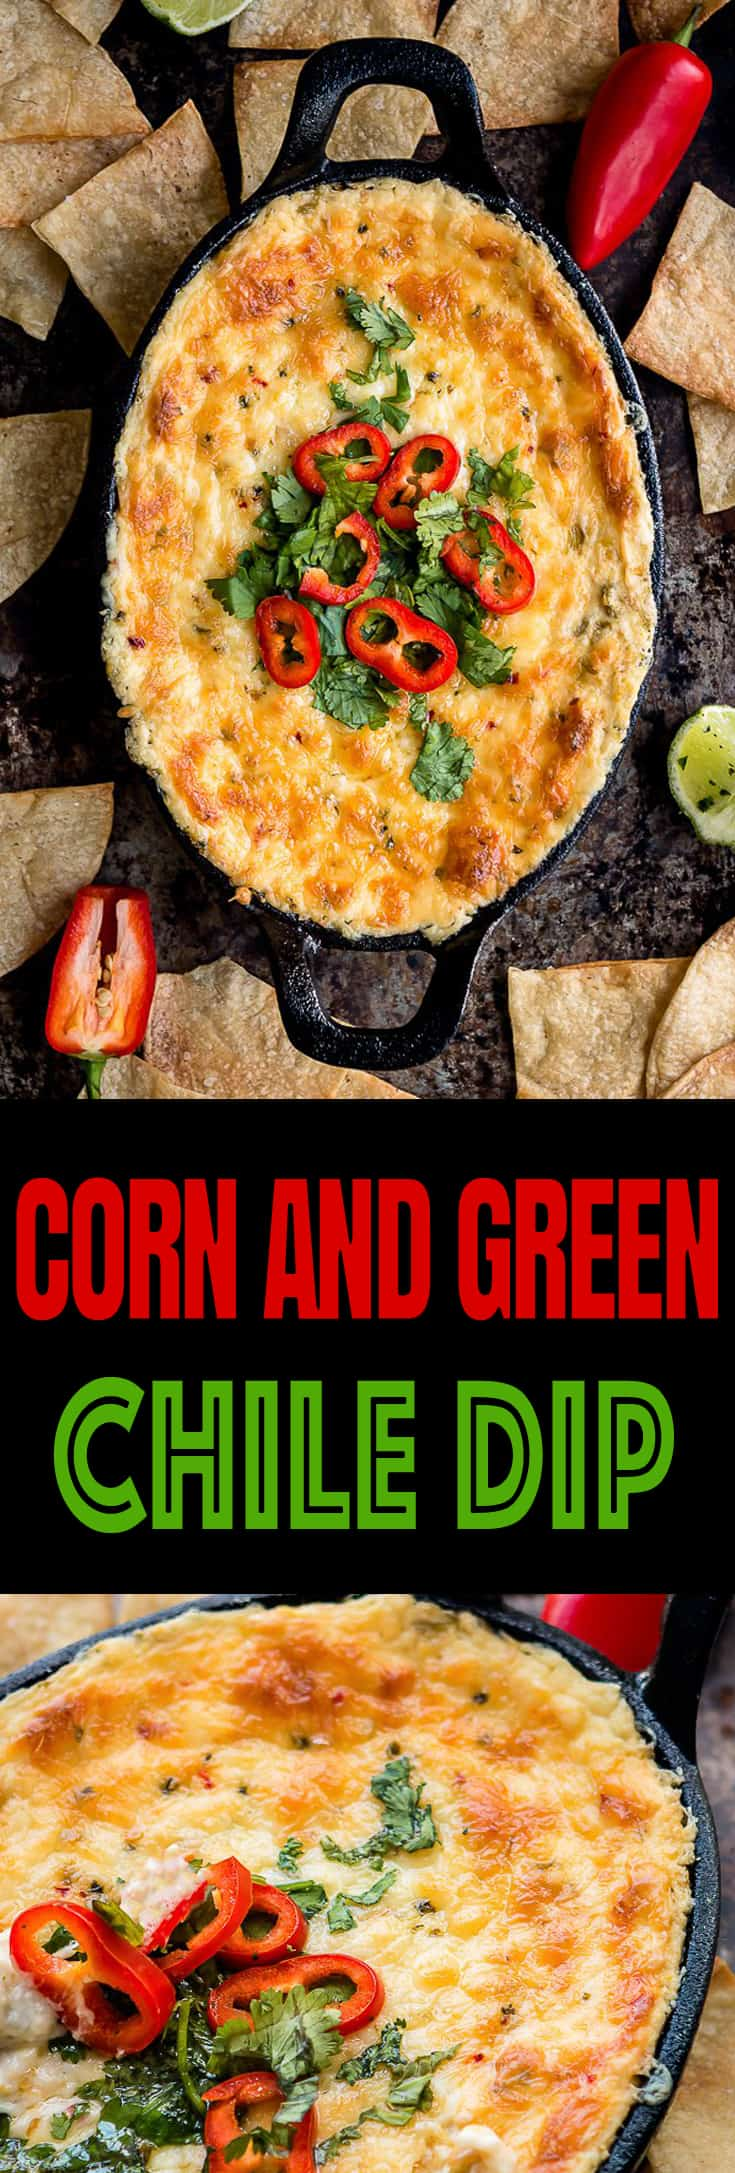 Corn and Green Chile Dip - A deliciously creamy, cheesy dip packed with lots of flavor! Everything you could ever want from a dip. Plus, It's VERY easy to make using only 4 ingredients. https://mommyshomecooking.com